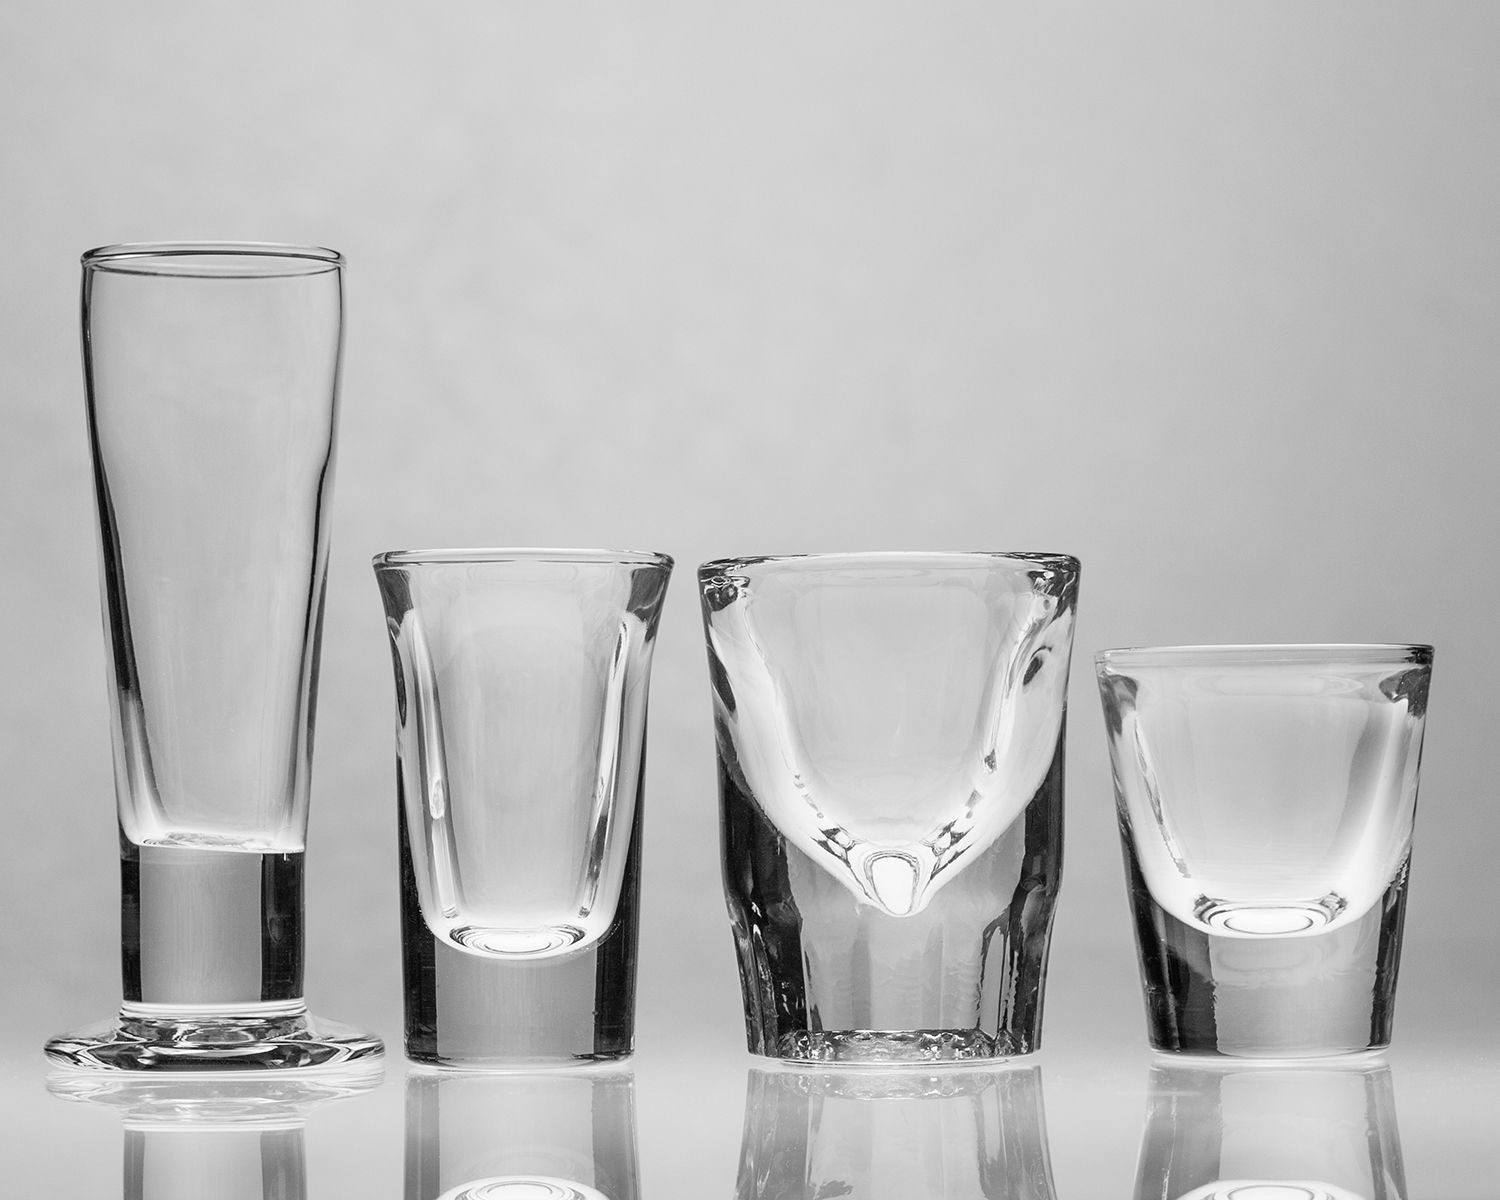 shannon crystal vase ireland of the types of glassware every bar needs pertaining to shot glasses 56a170245f9b58b7d0bf49ea